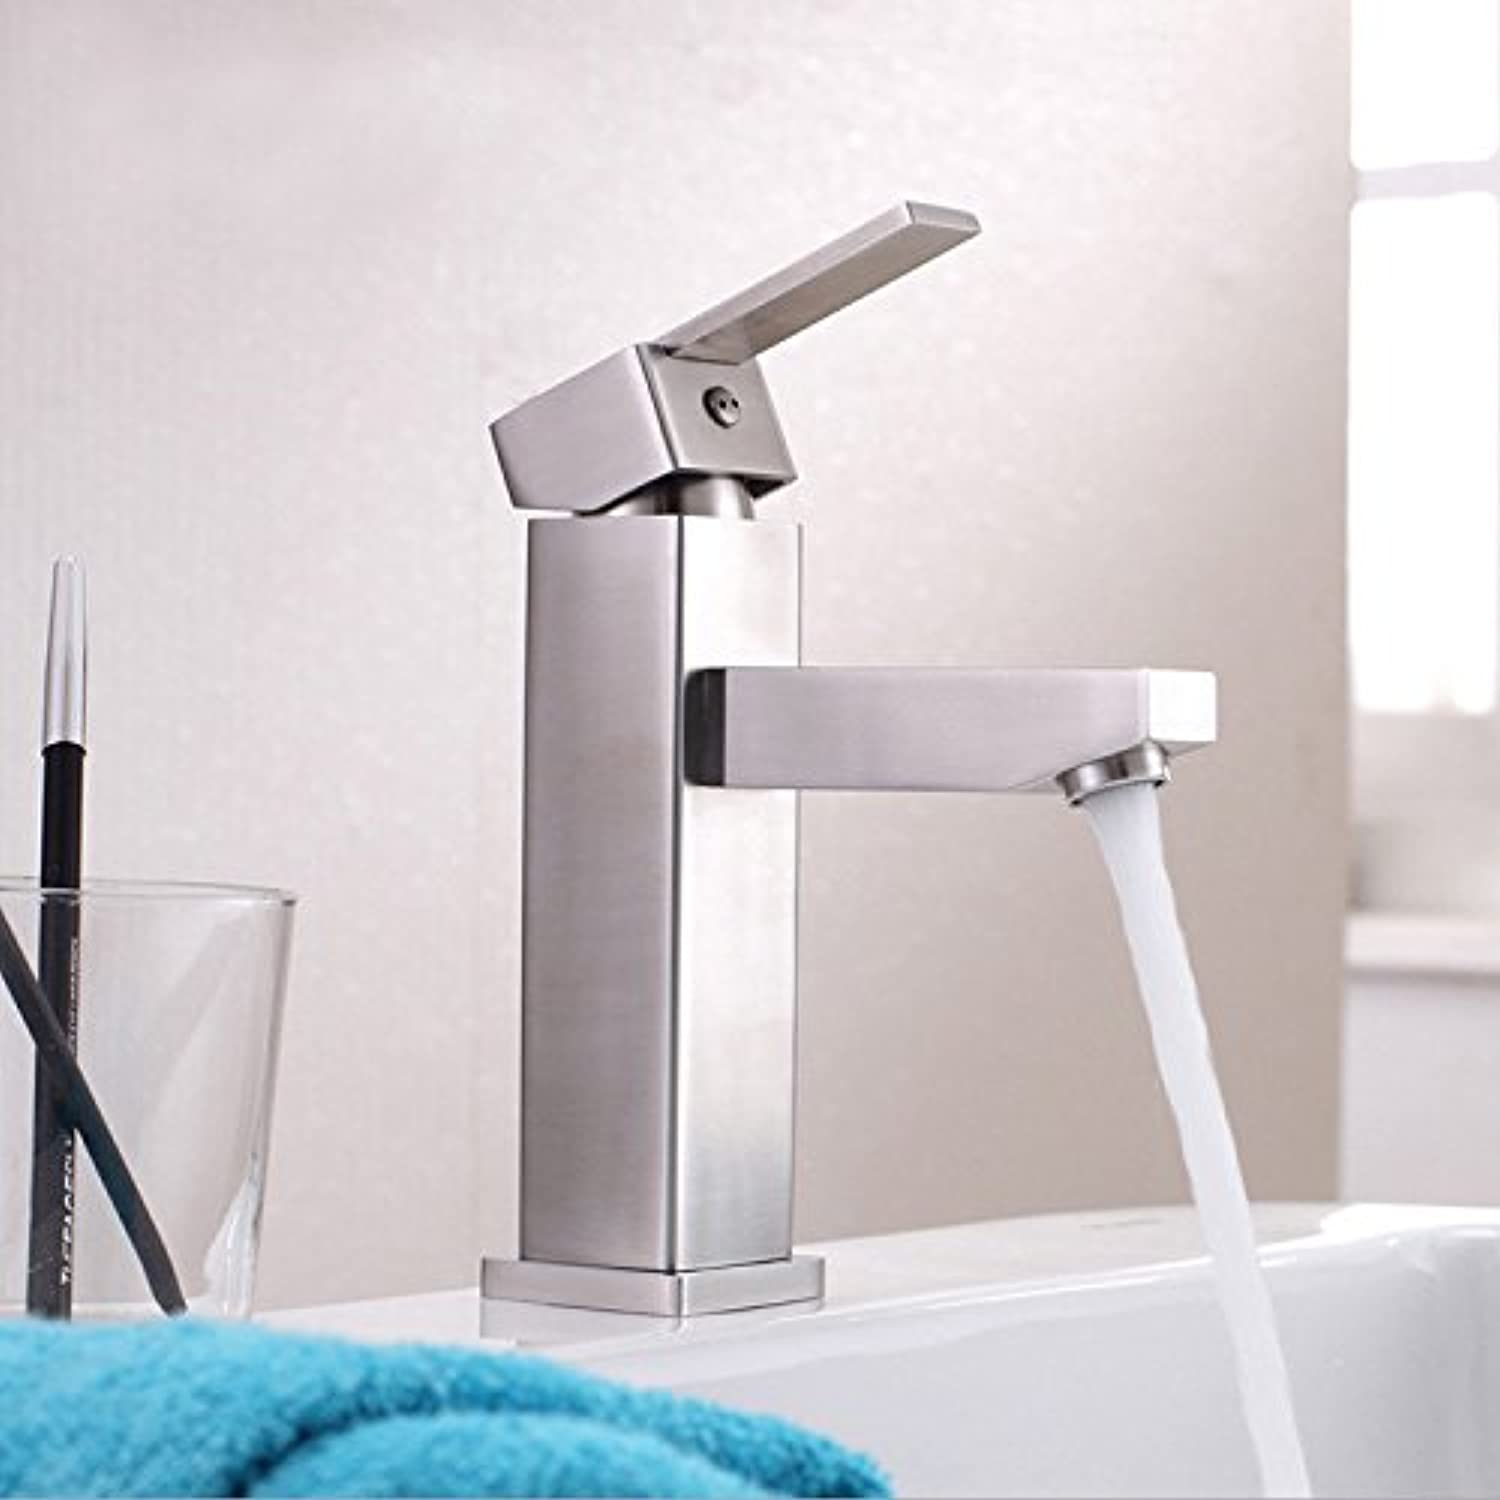 Basin faucet _ stainless steel faucet basin faucet hot and cold drawing of single hole faucet